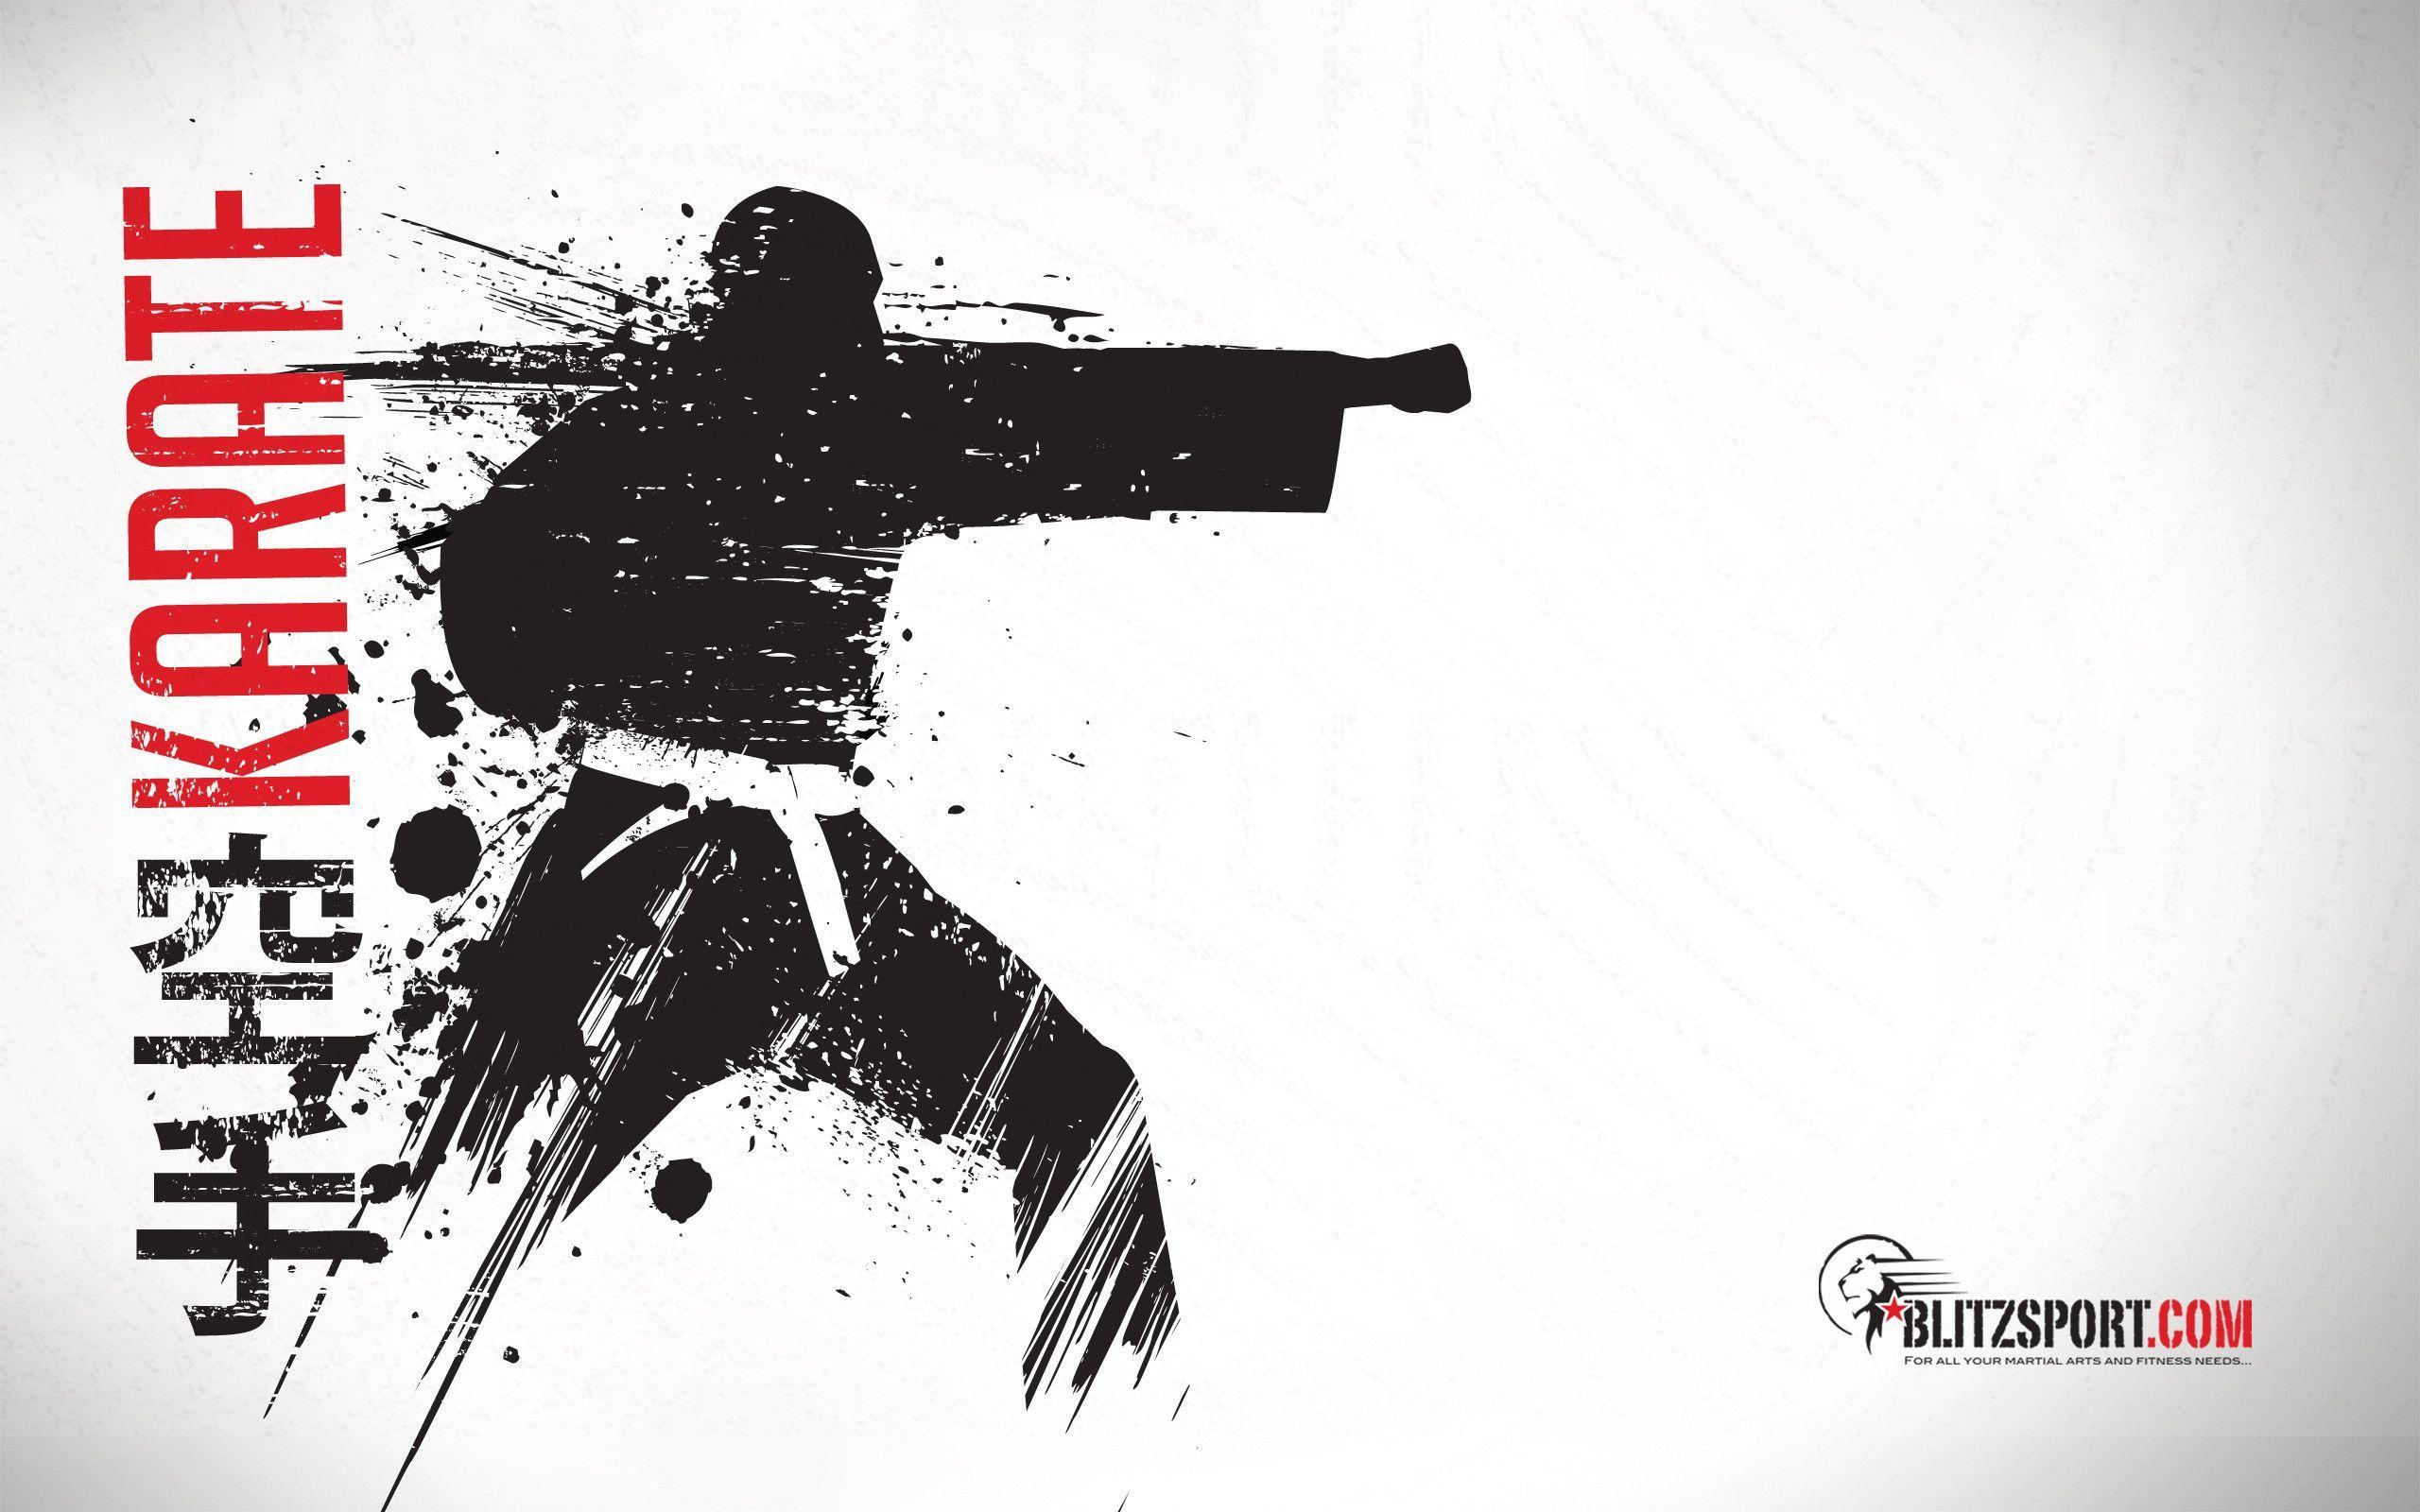 karate wallpapers hd backgrounds - wallpaper cave